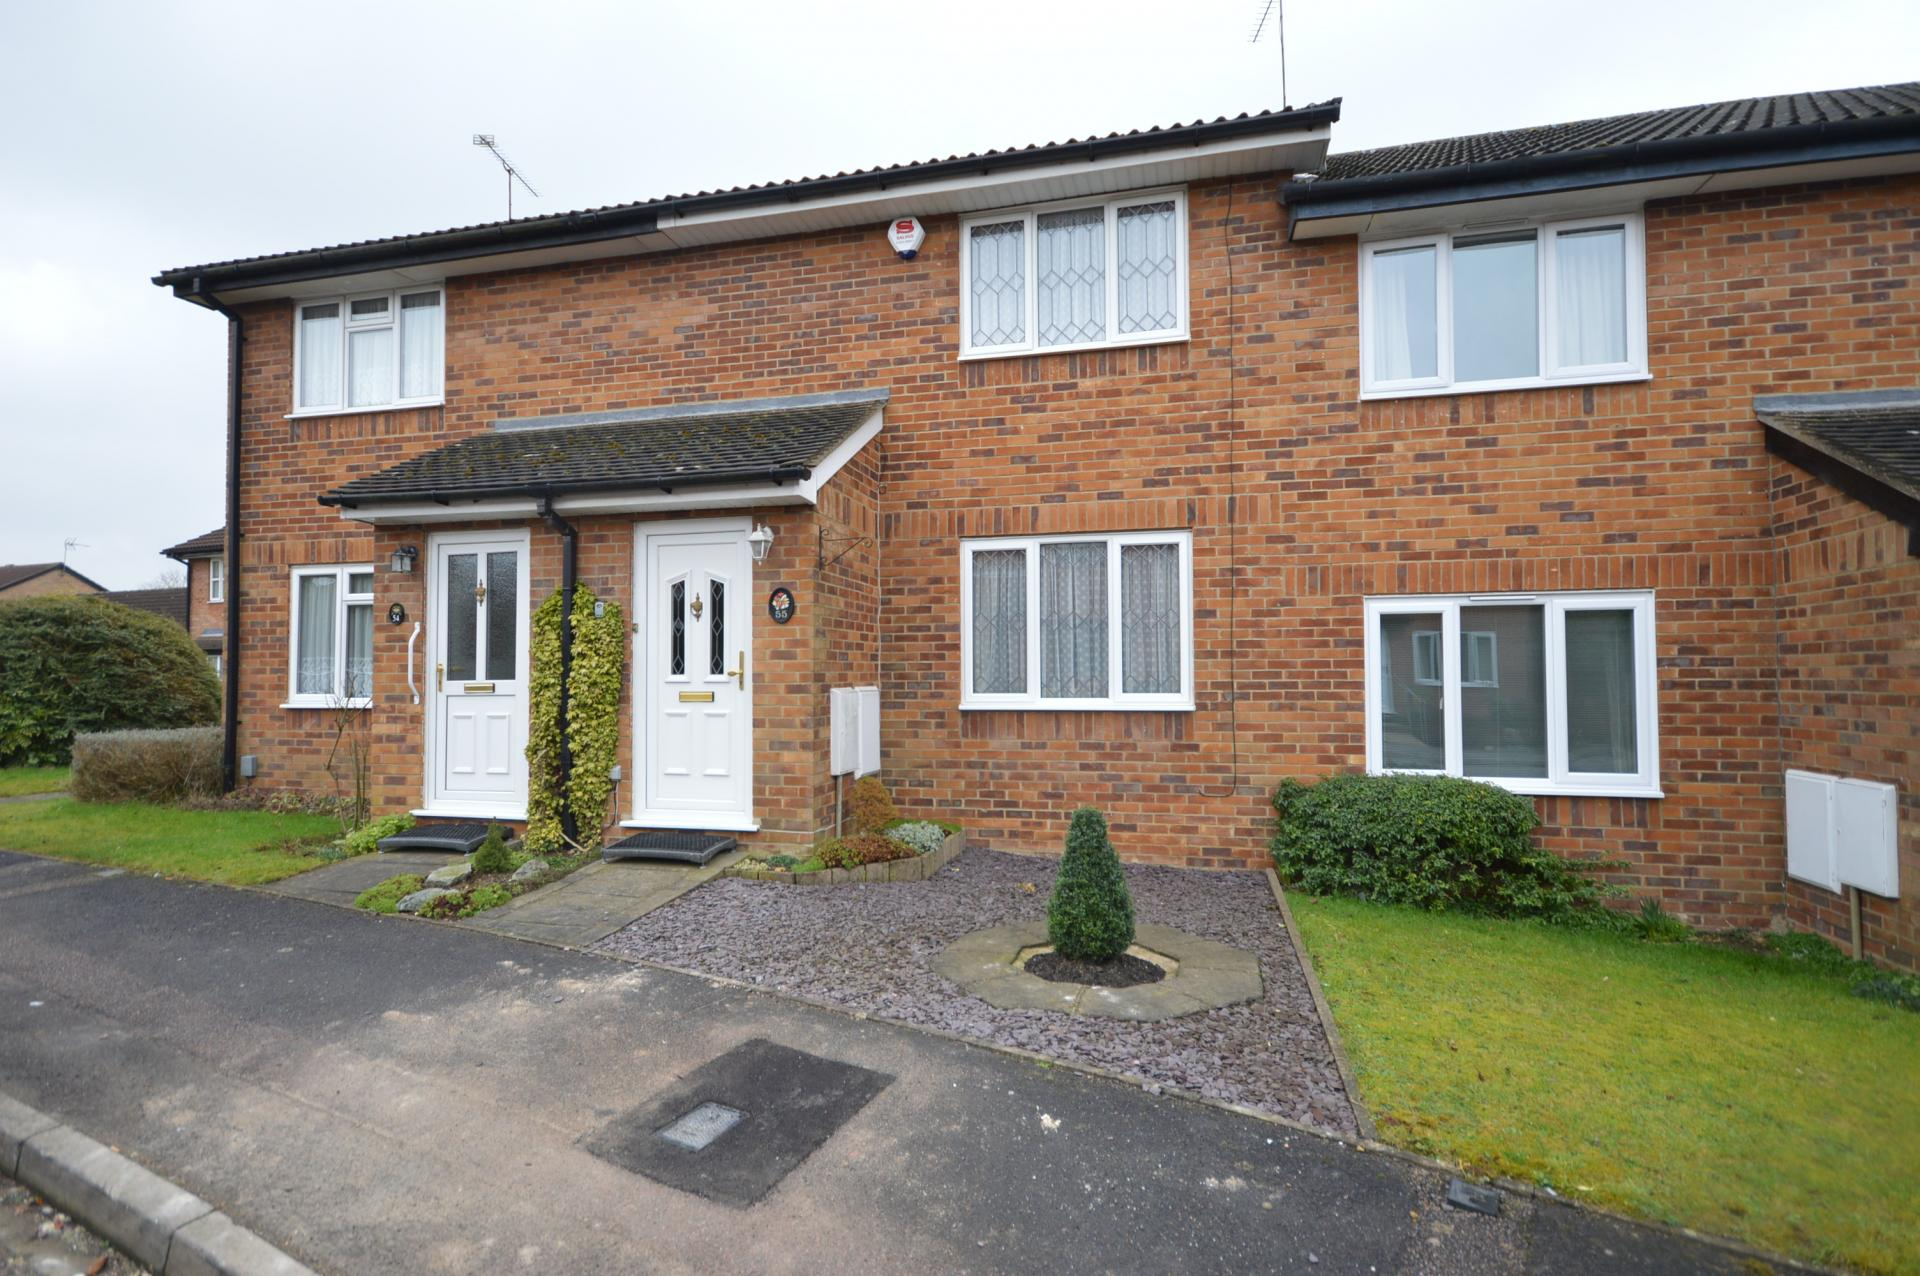 1 Bedroom House For Sale In Luton 28 Images The Best 28 Images Of 1 Bedroom House For Sale